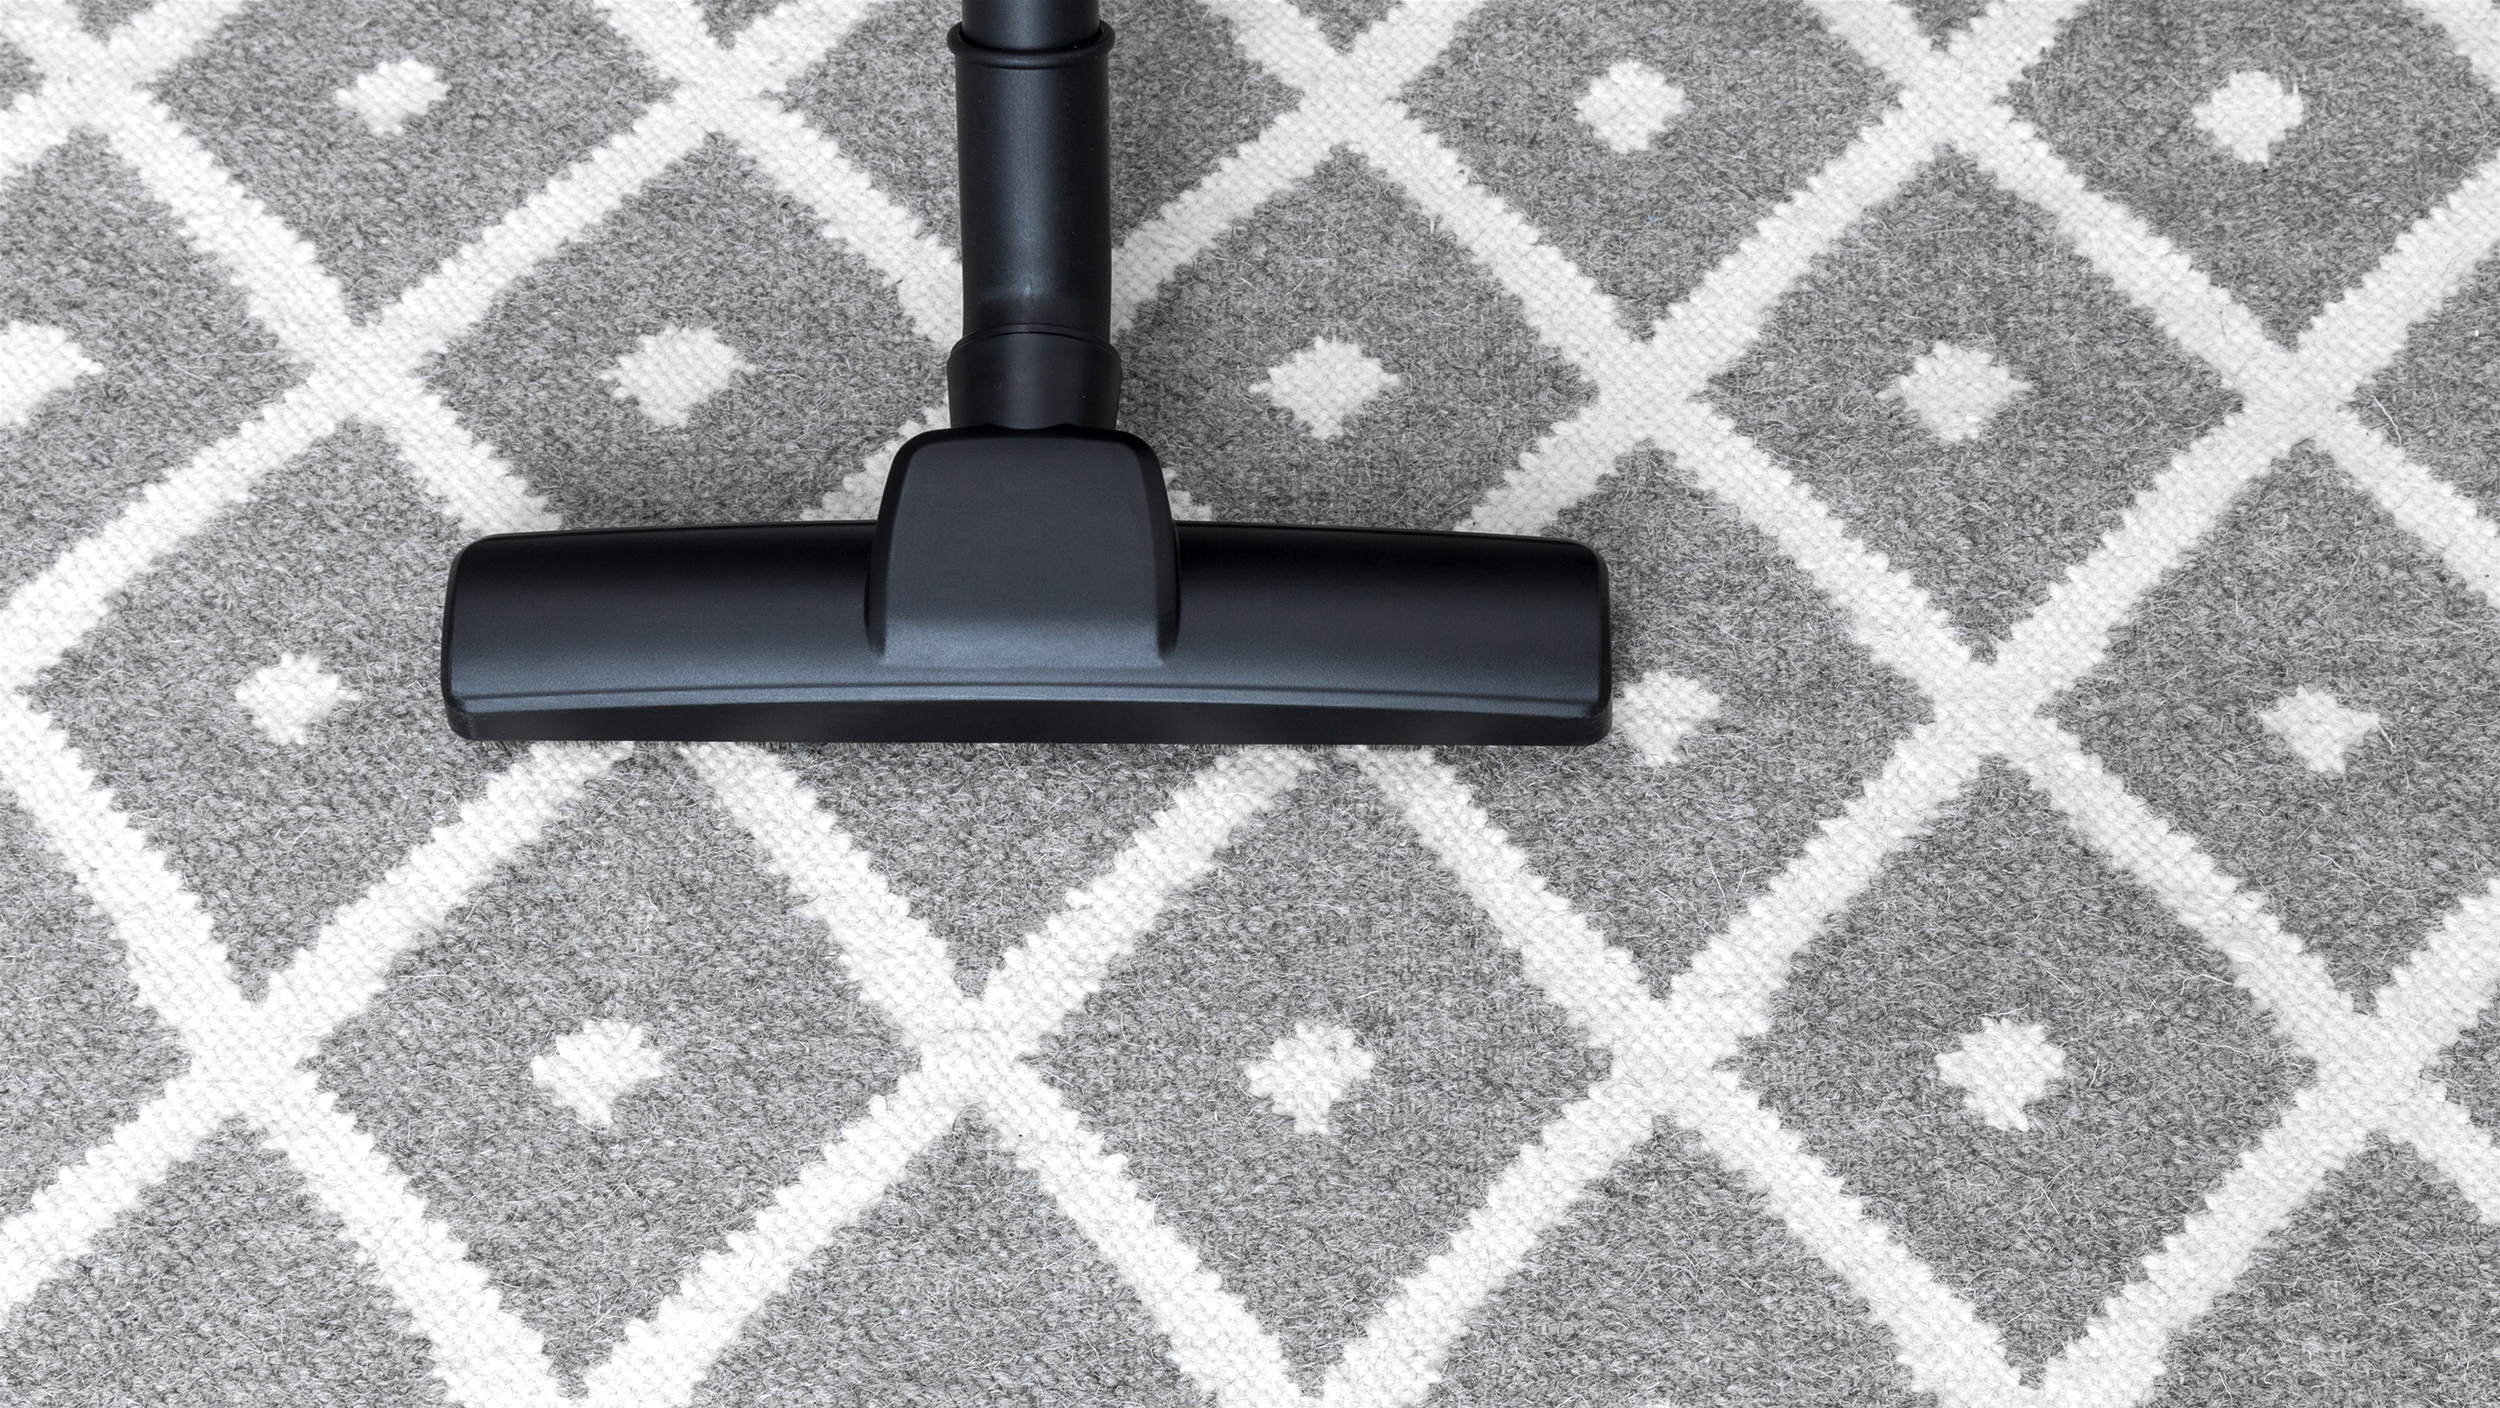 Slow-motion vacuuming? 7 cleaning tips you haven't heard before